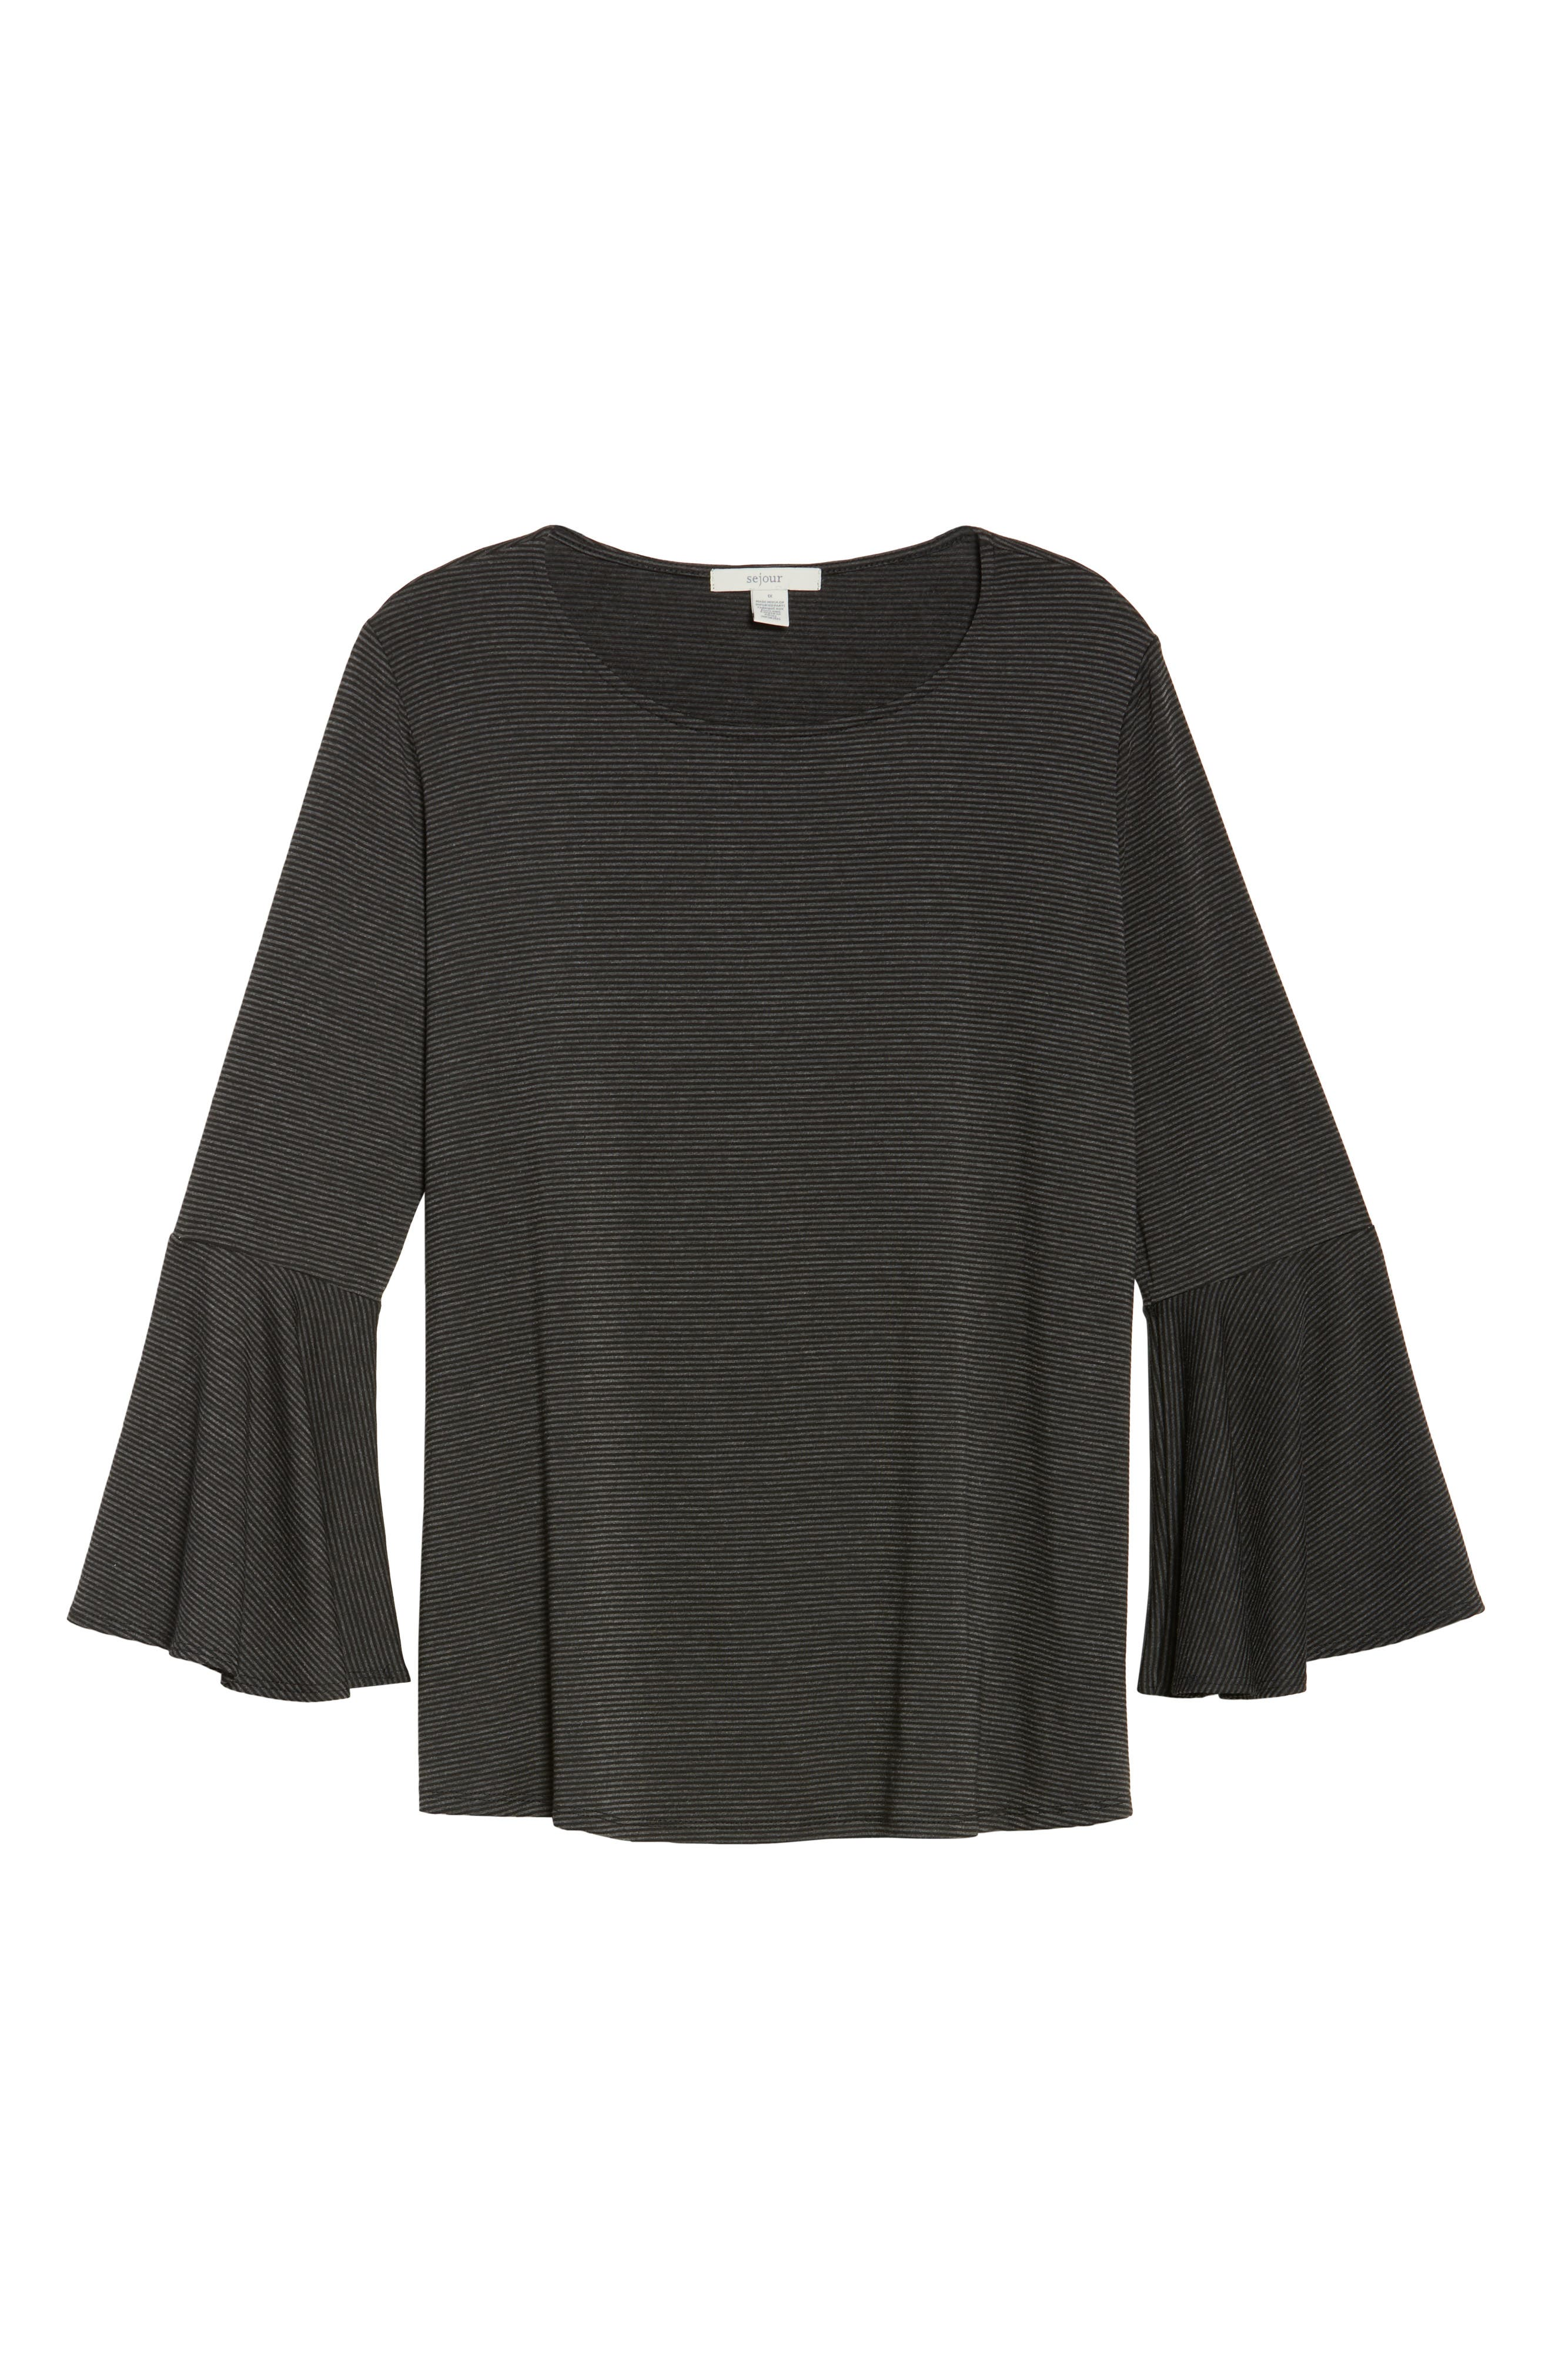 Bell Sleeve Top,                             Alternate thumbnail 6, color,                             001